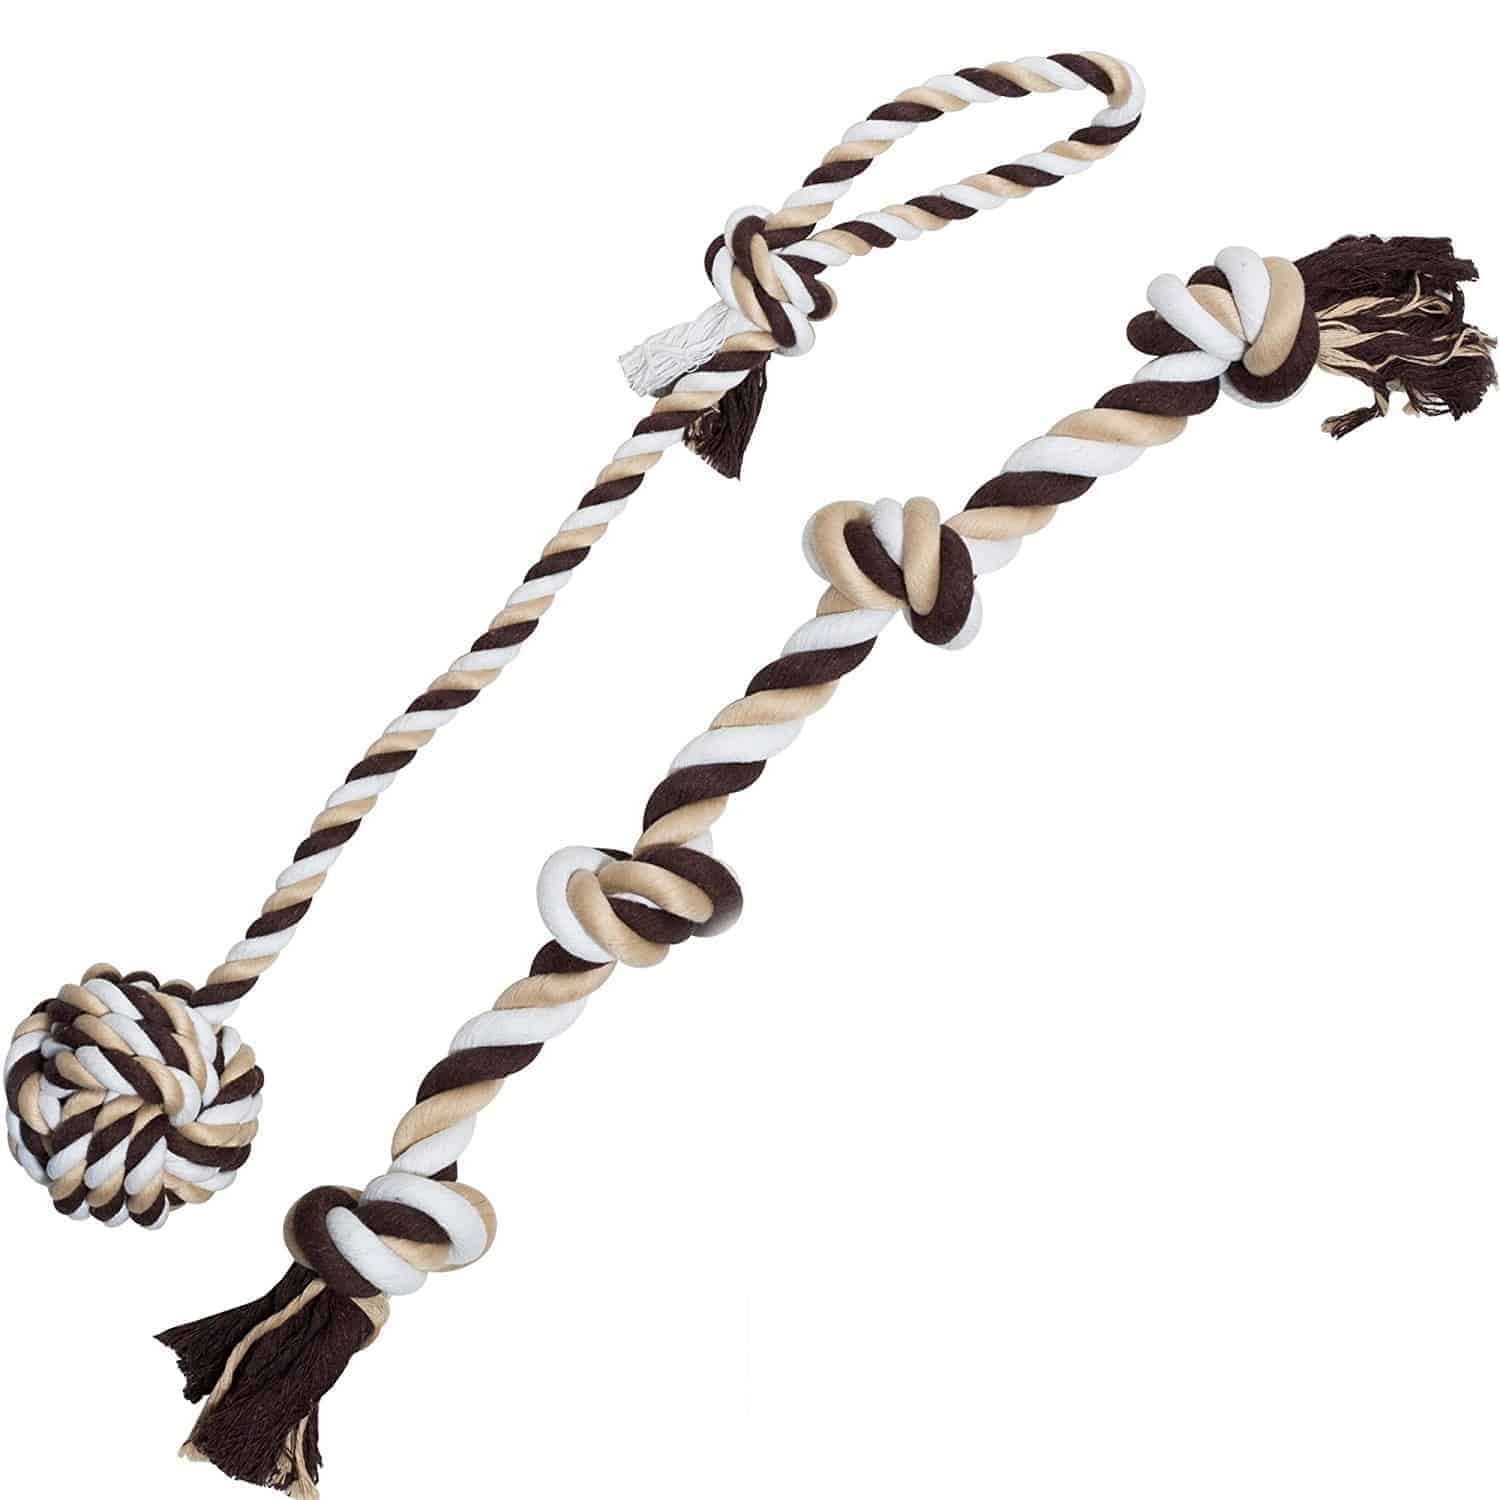 Best Dog Rope Toys – The Natural Pet Company